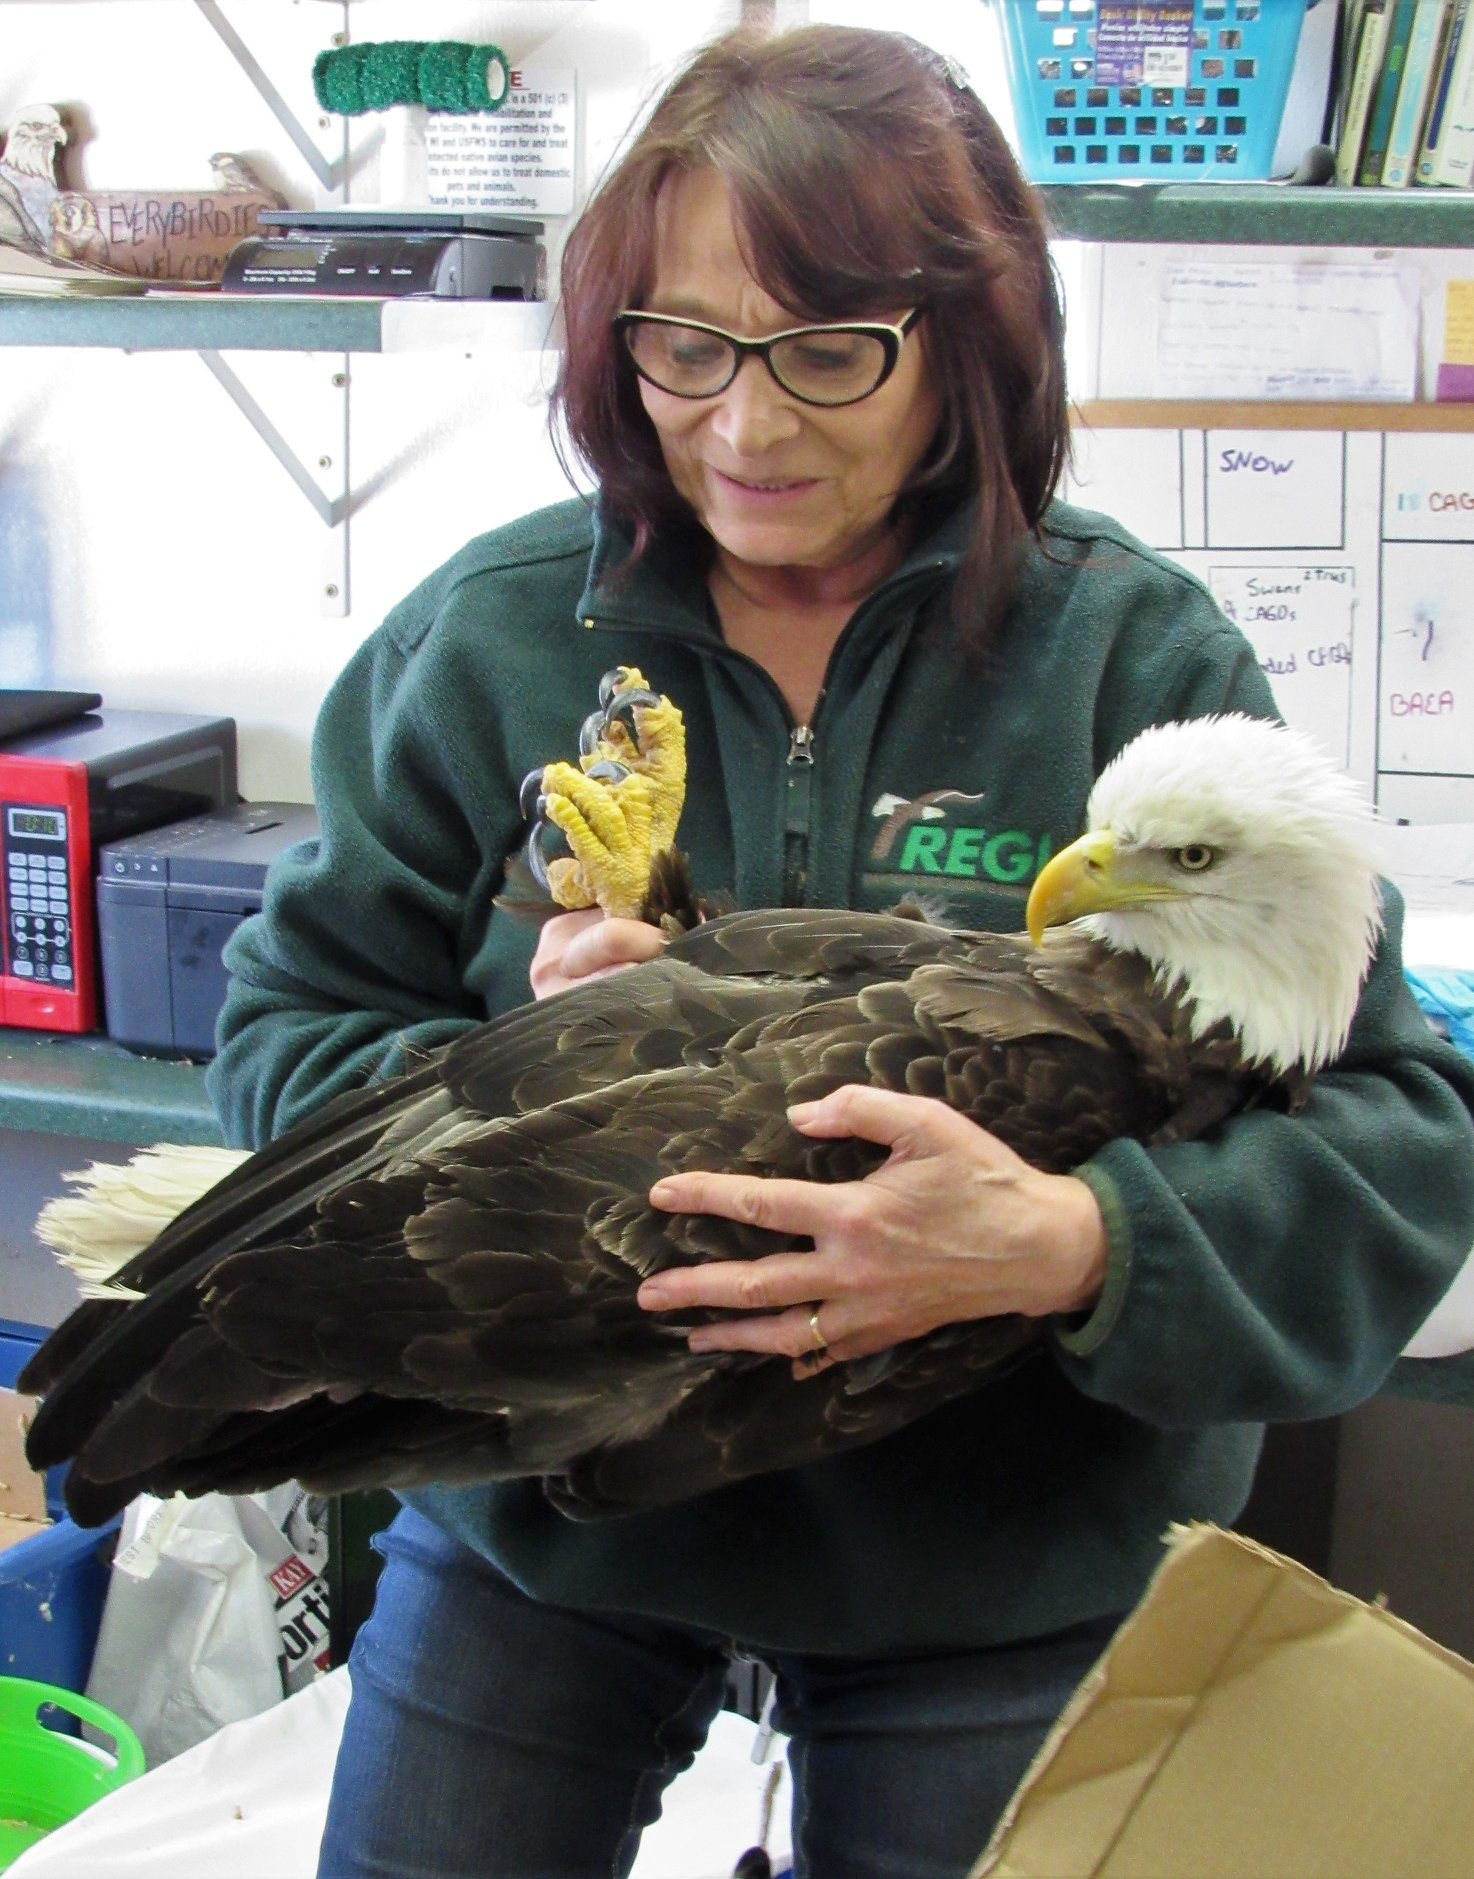 An  adult Bald eagle was rescued by DNR Warden Erika Taylor and transported  to REGI by Mark O;Shasky, The eagle has lead poisoning and a wing  fracture.